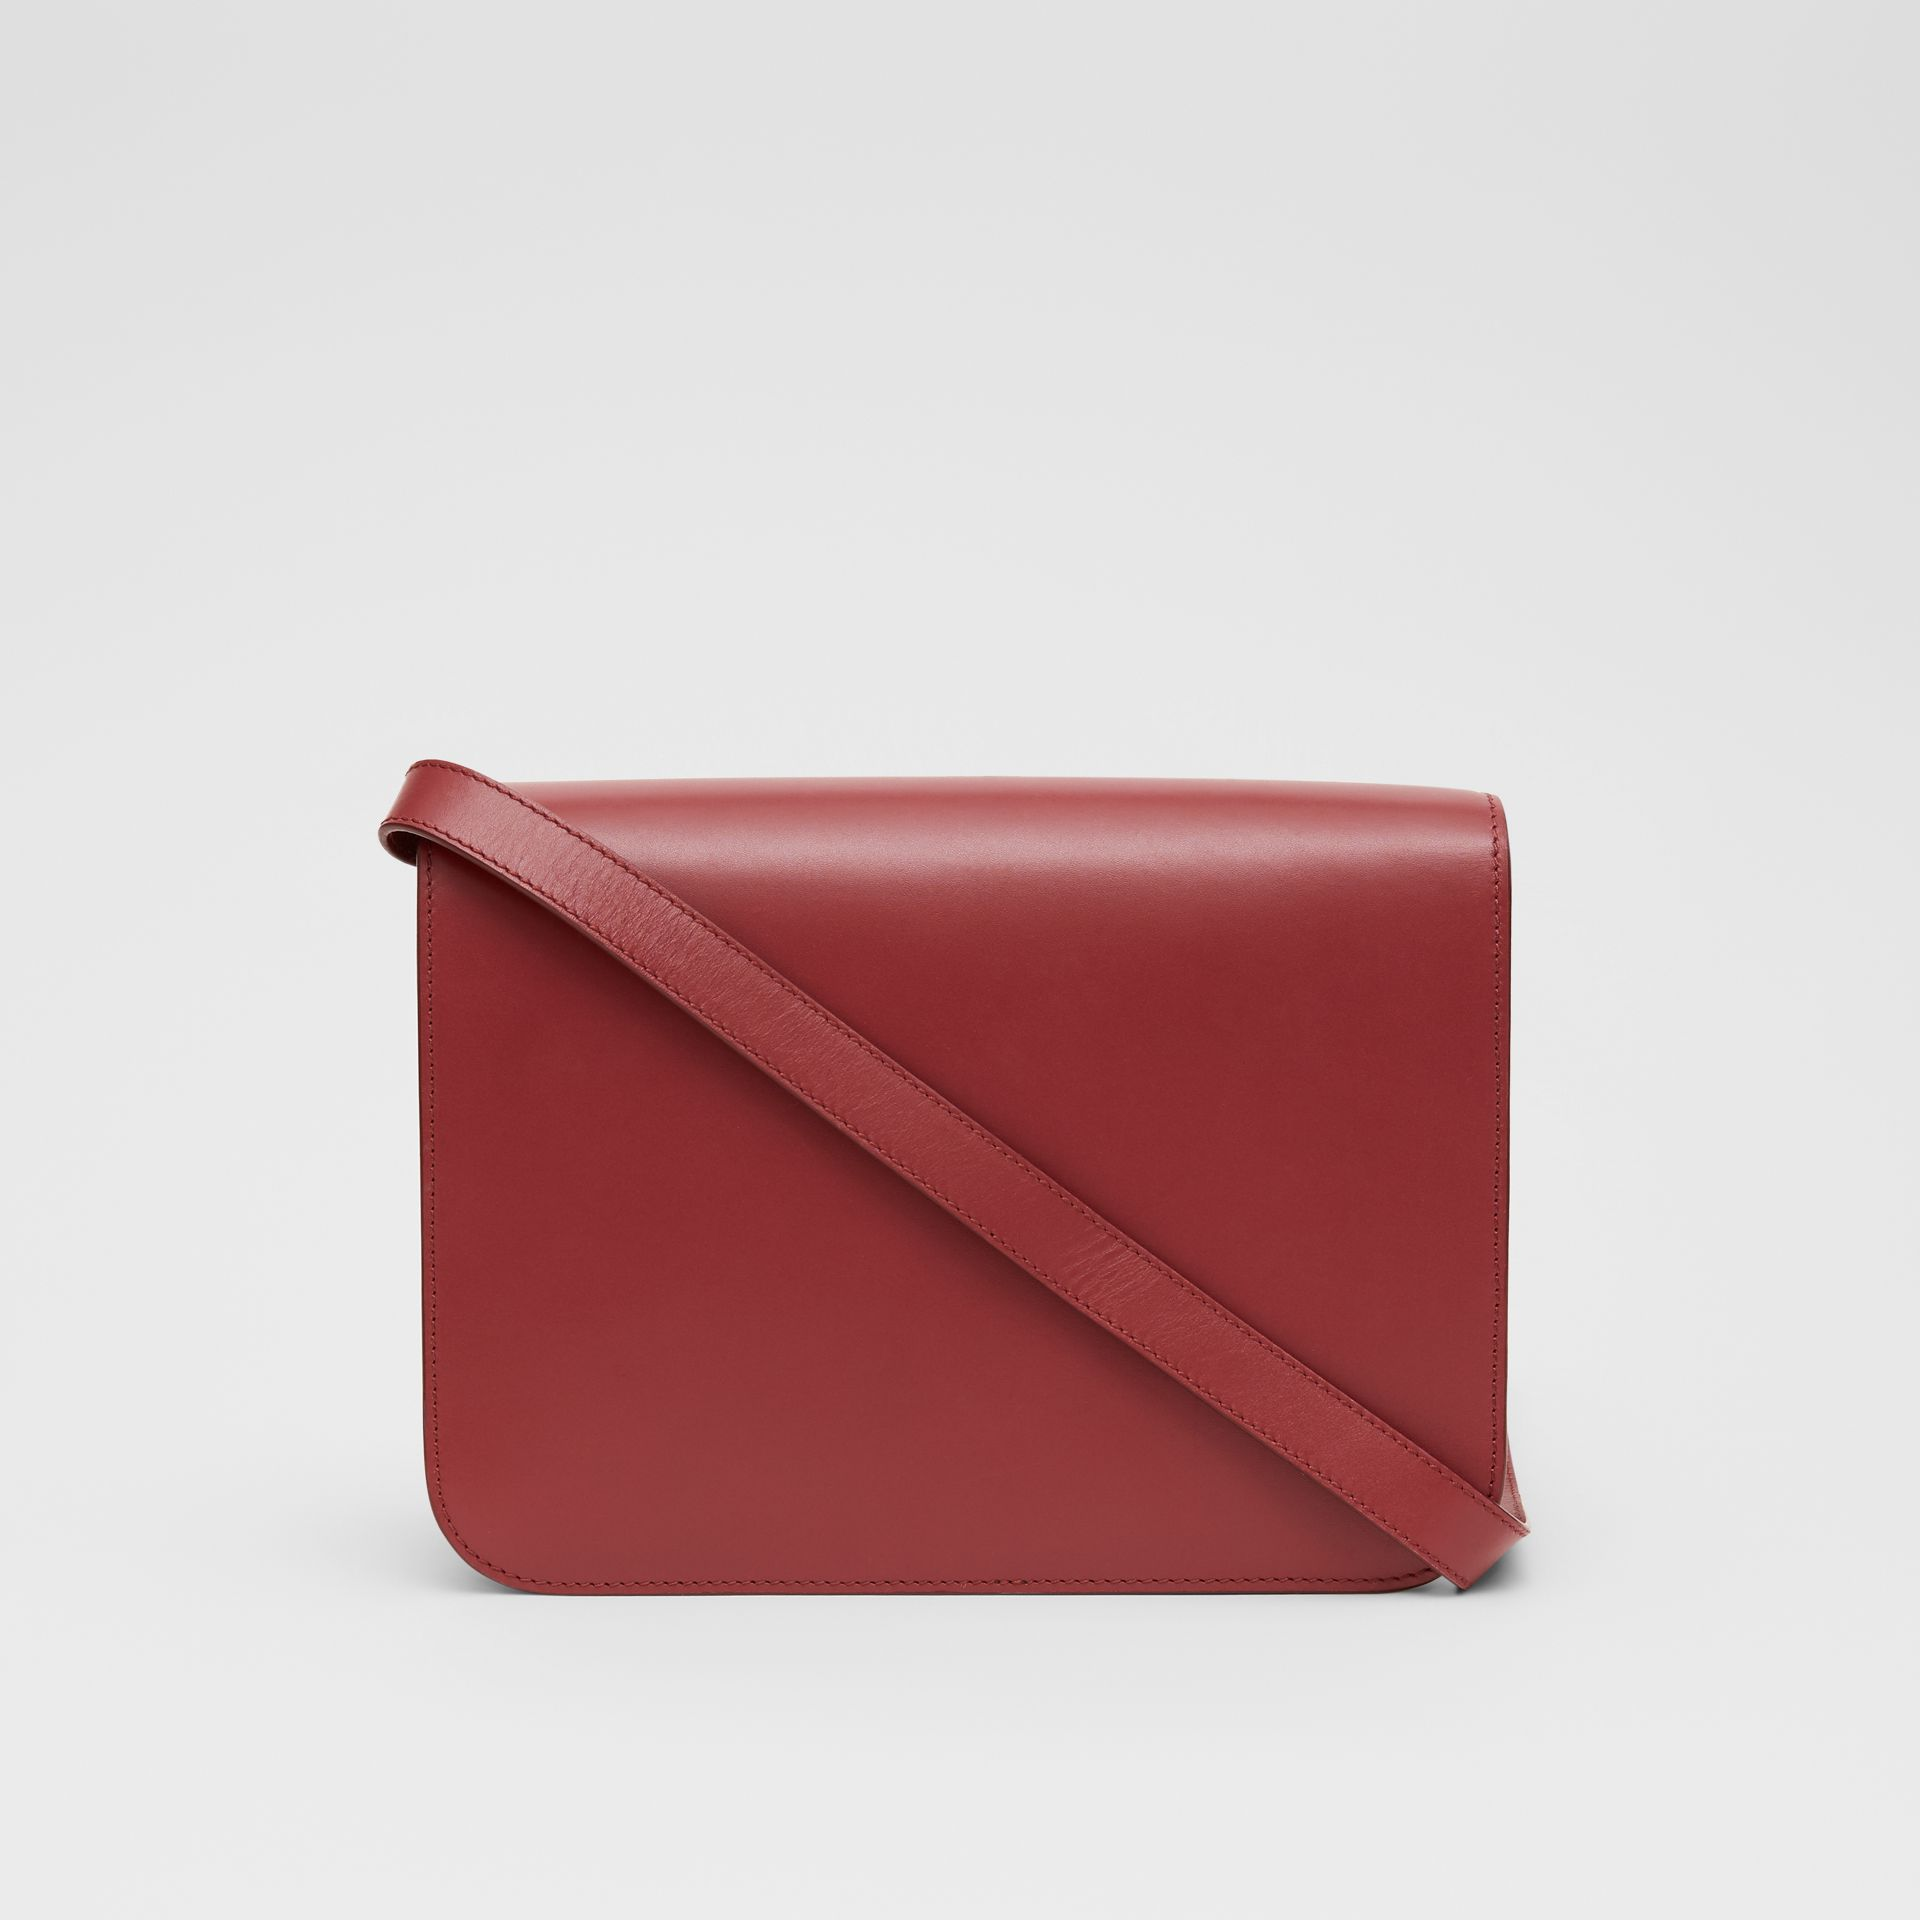 Medium Leather TB Bag in Crimson - Women | Burberry Hong Kong - gallery image 7